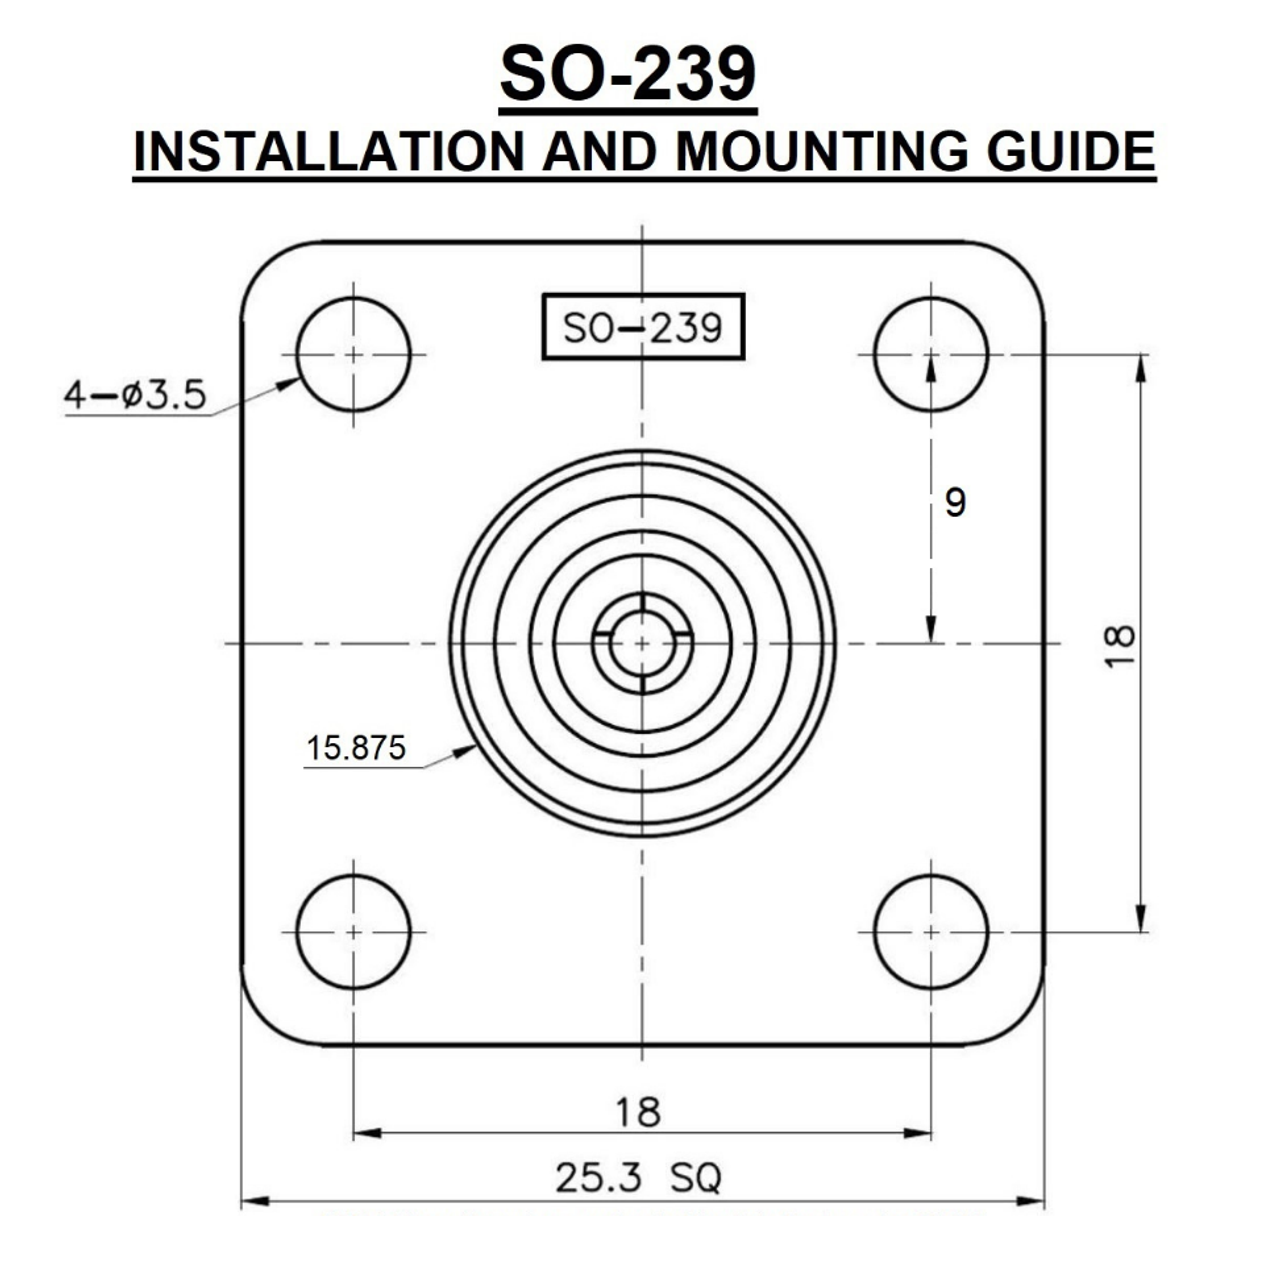 SO-239 UHF-Female 4-Hole Panel Mount Coaxial Connector